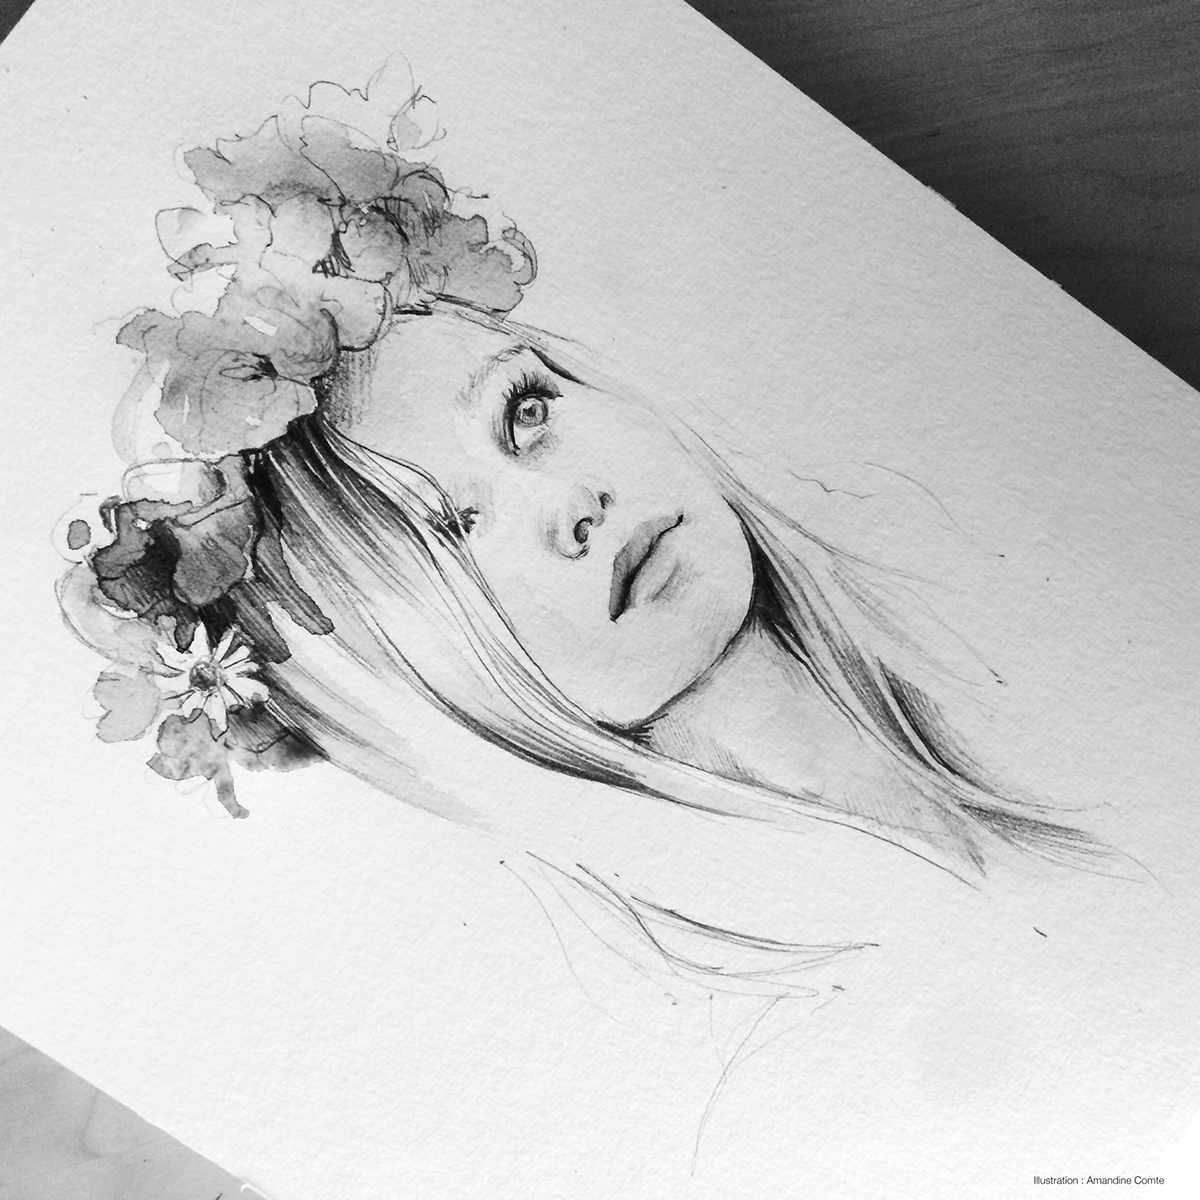 14-Flower-crown-Amandine-Comte-and-Ink-pencil-Drawings-with-a-splash-of-Watercolors